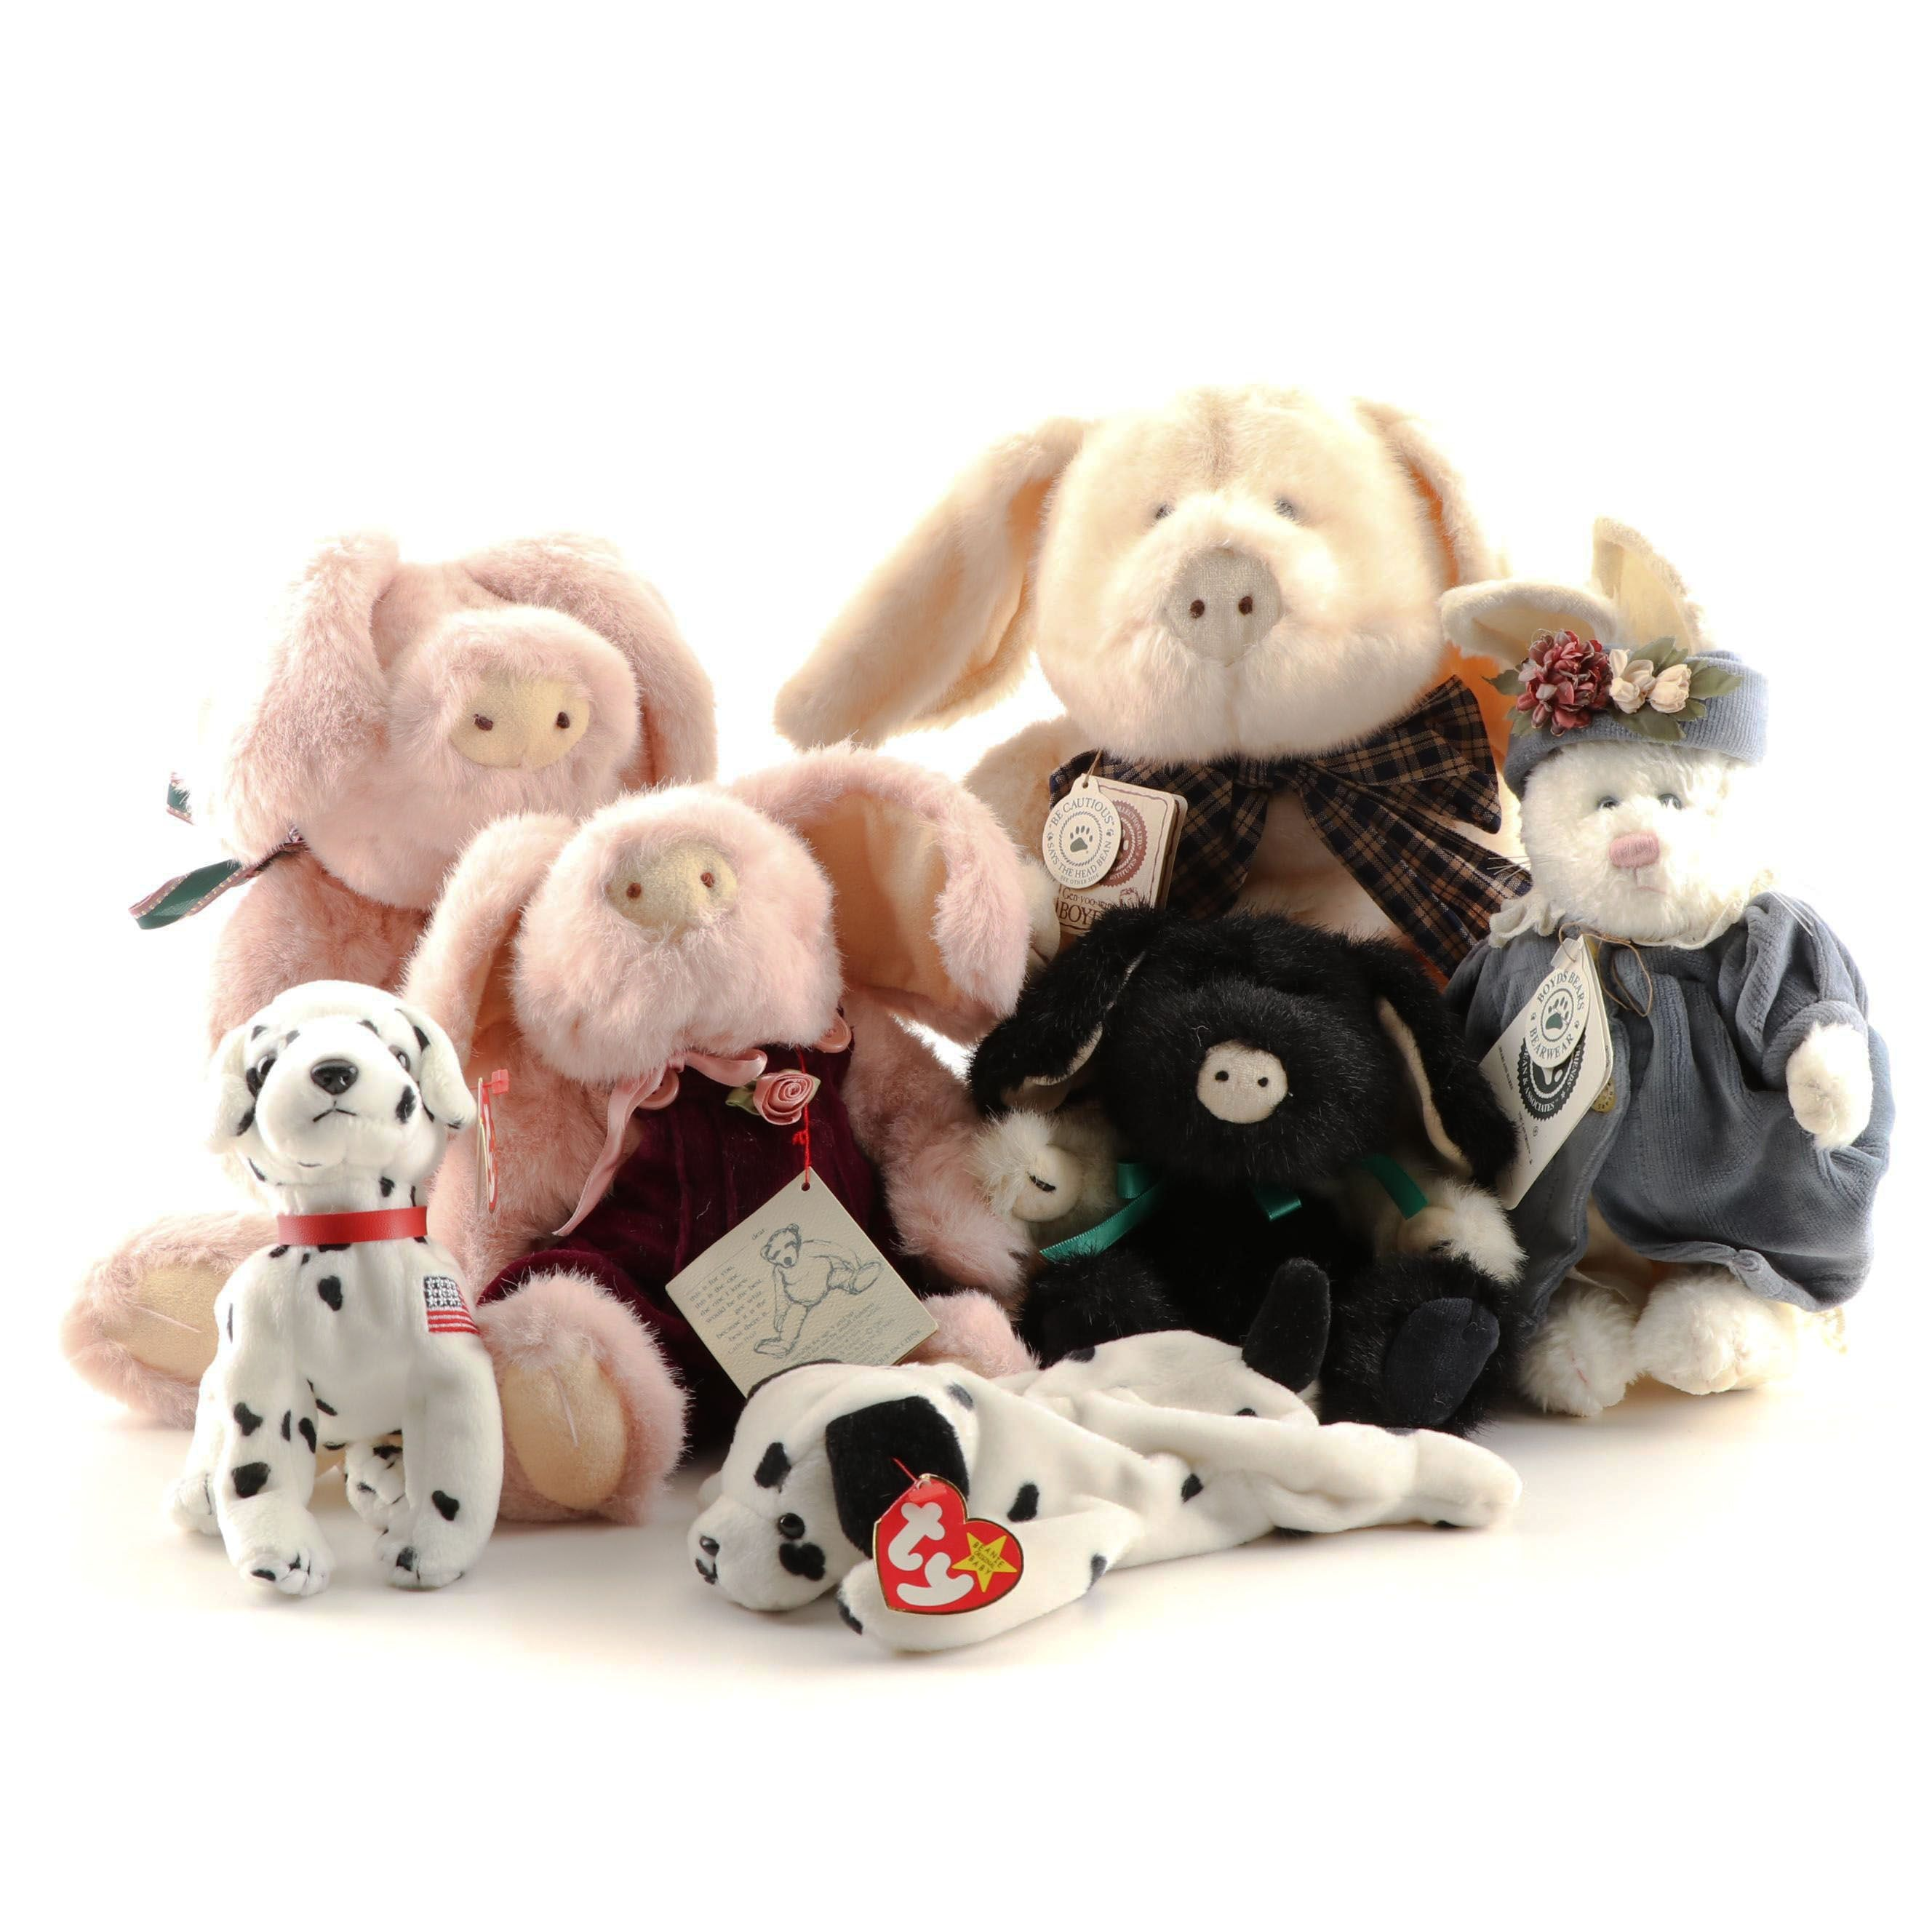 Stuffed Toys Featuring Ty Beanie Babies And Boyd's Collection